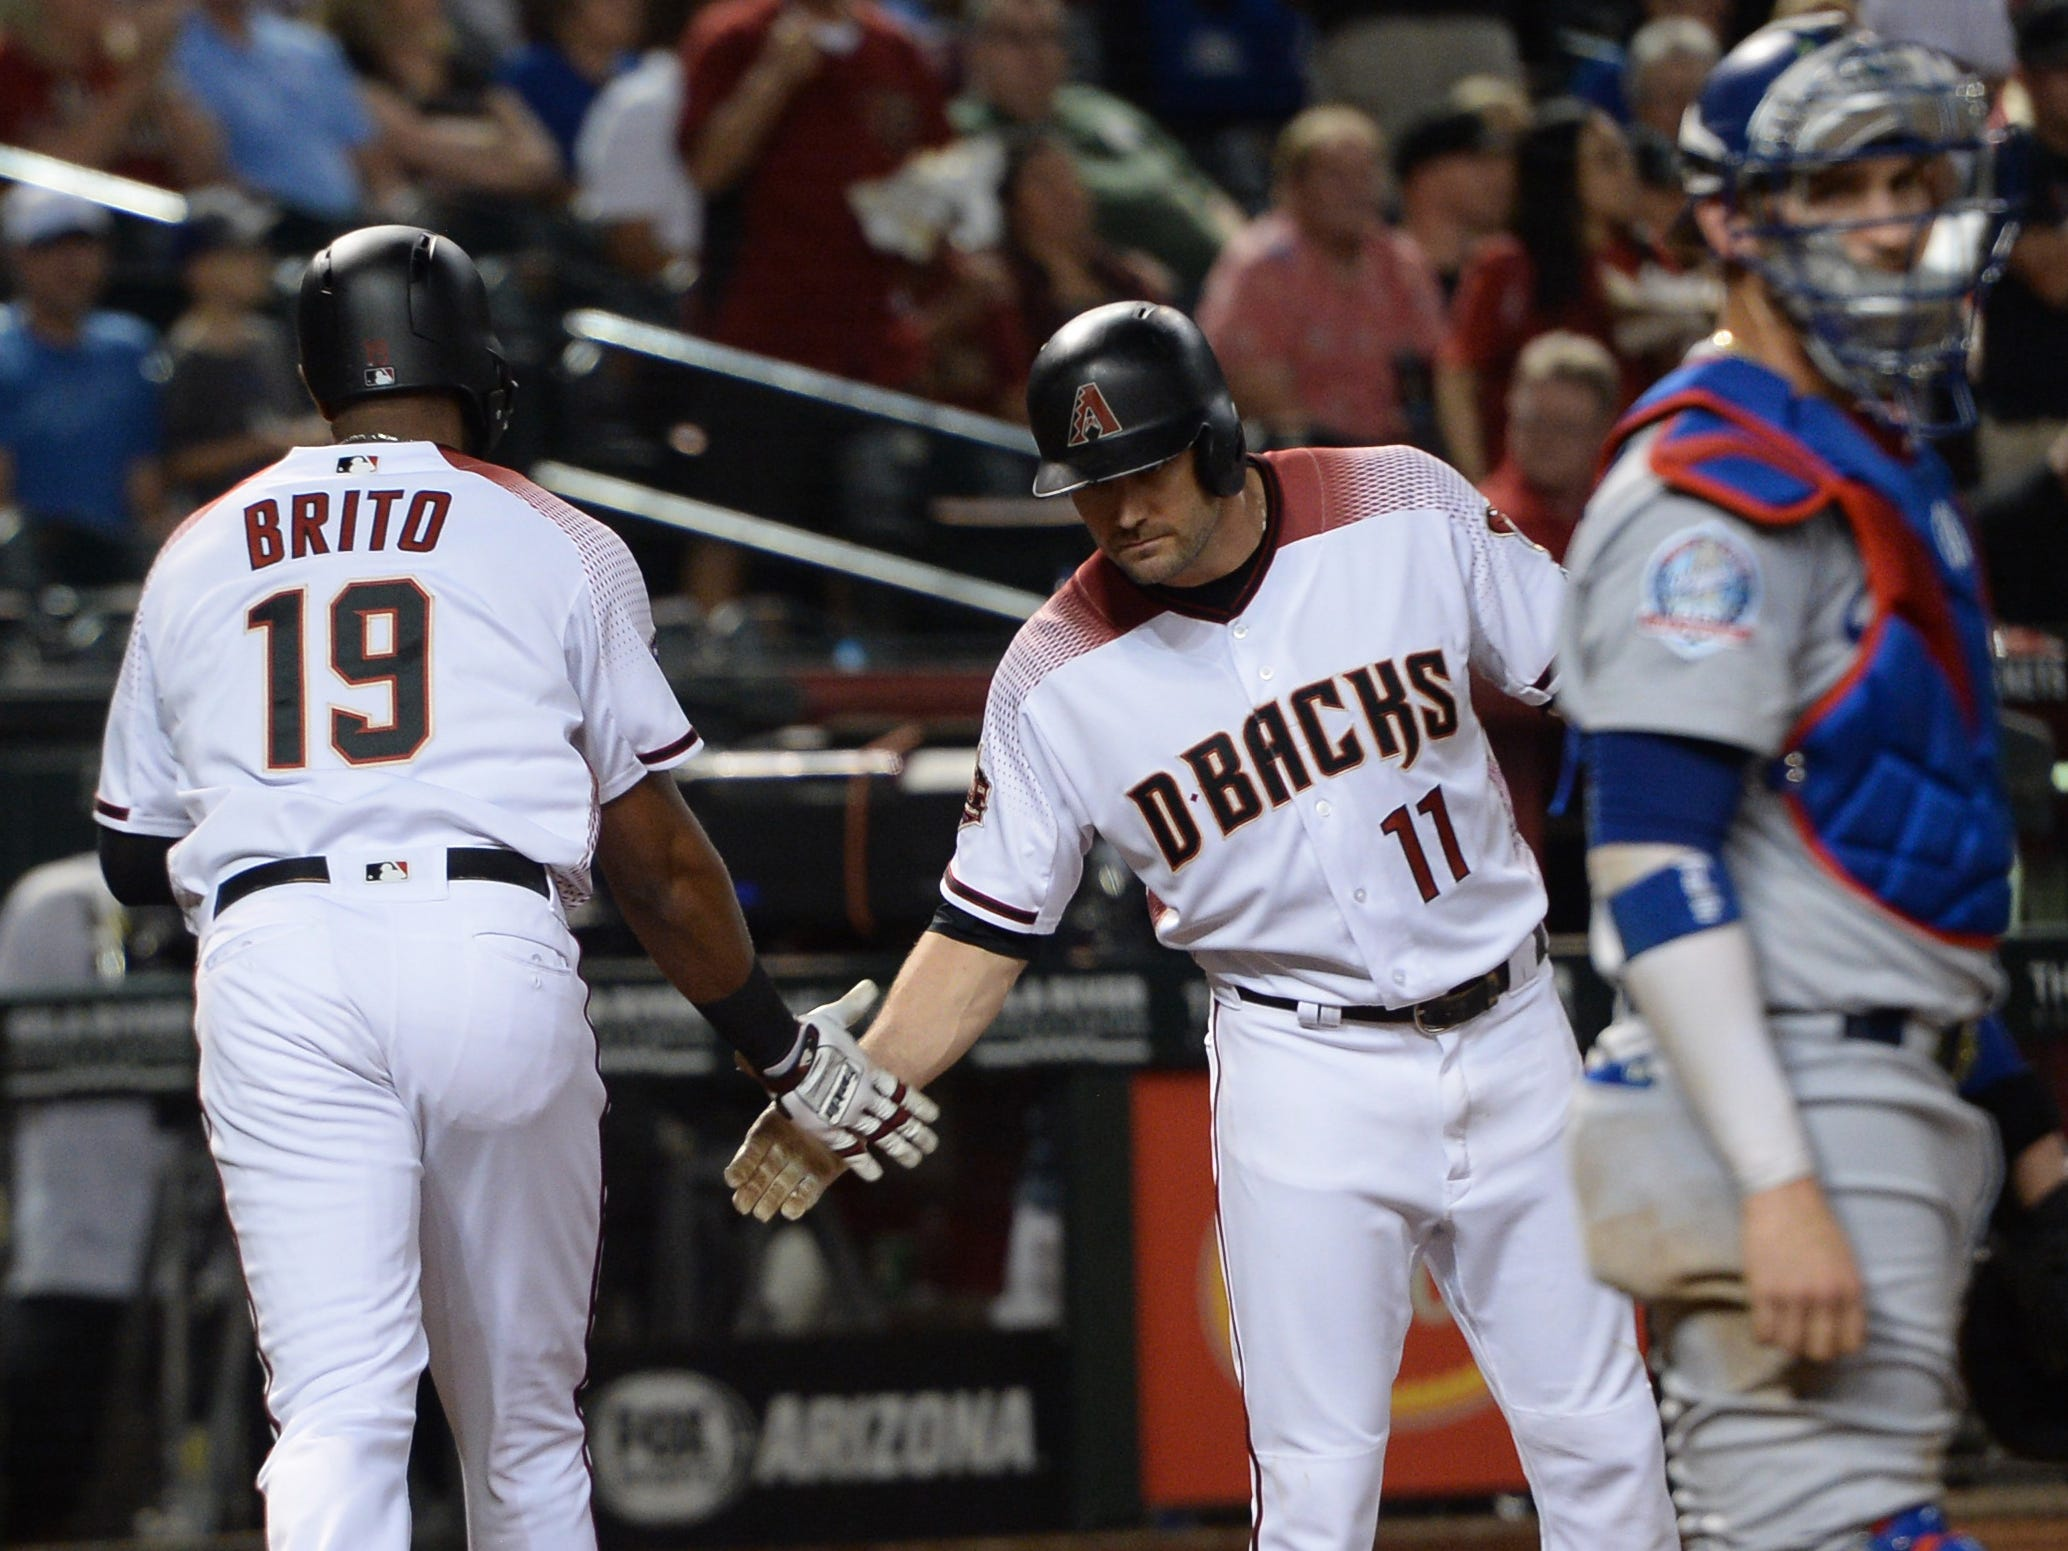 Sep 26, 2018; Phoenix, AZ, USA; Arizona Diamondbacks center fielder Socrates Brito (19) slaps hands with center fielder A.J. Pollock (11) after hitting a solo home run against the Los Angeles Dodgers during the second inning at Chase Field.